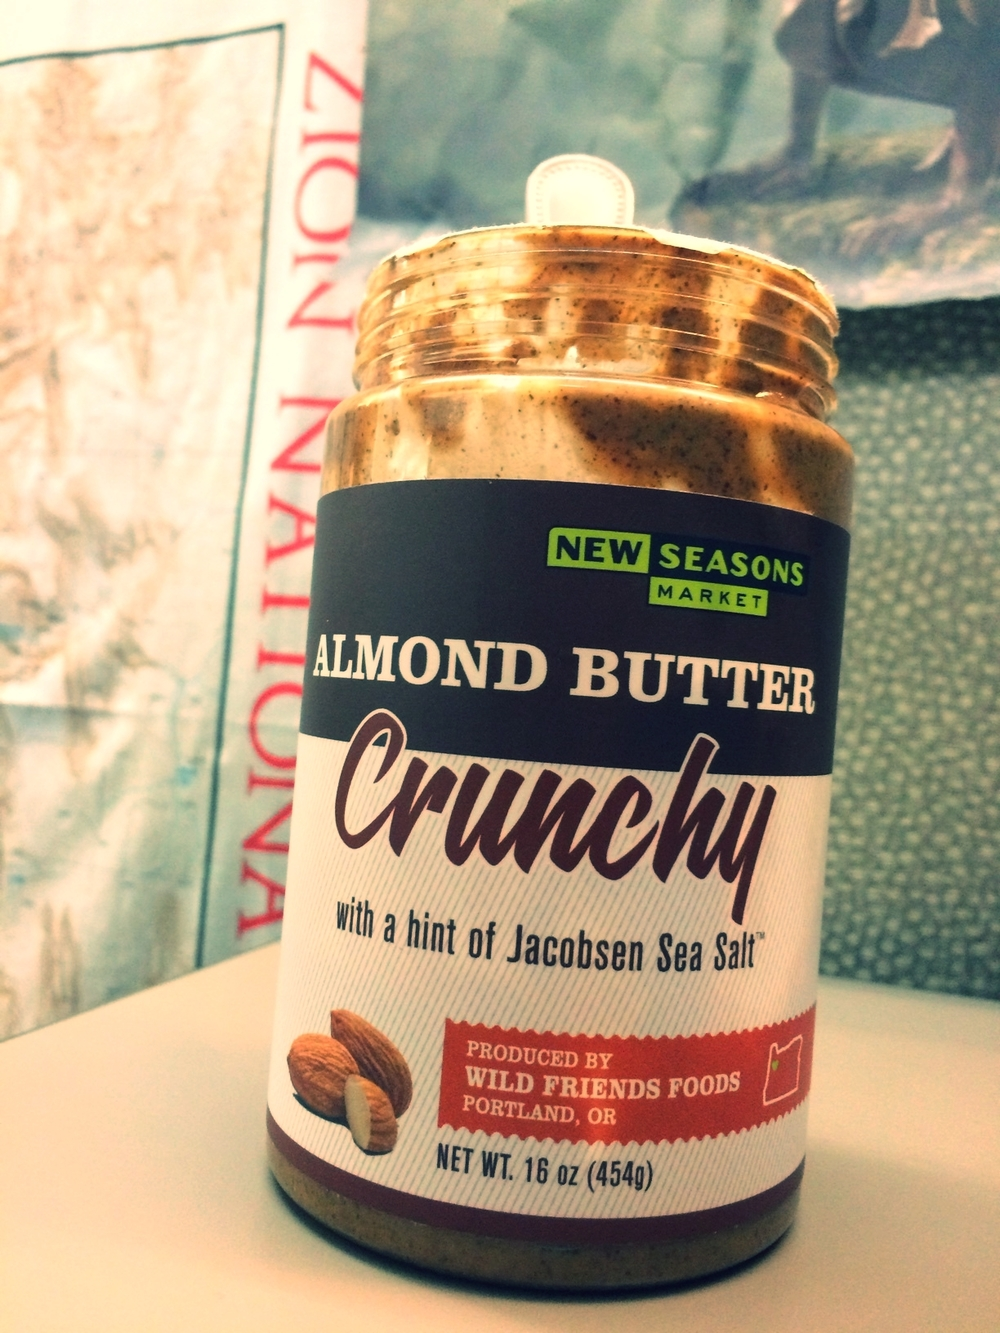 New Season's Almond Butter with a hint of Jacobsen Sea Salt, pictured here, with spoon